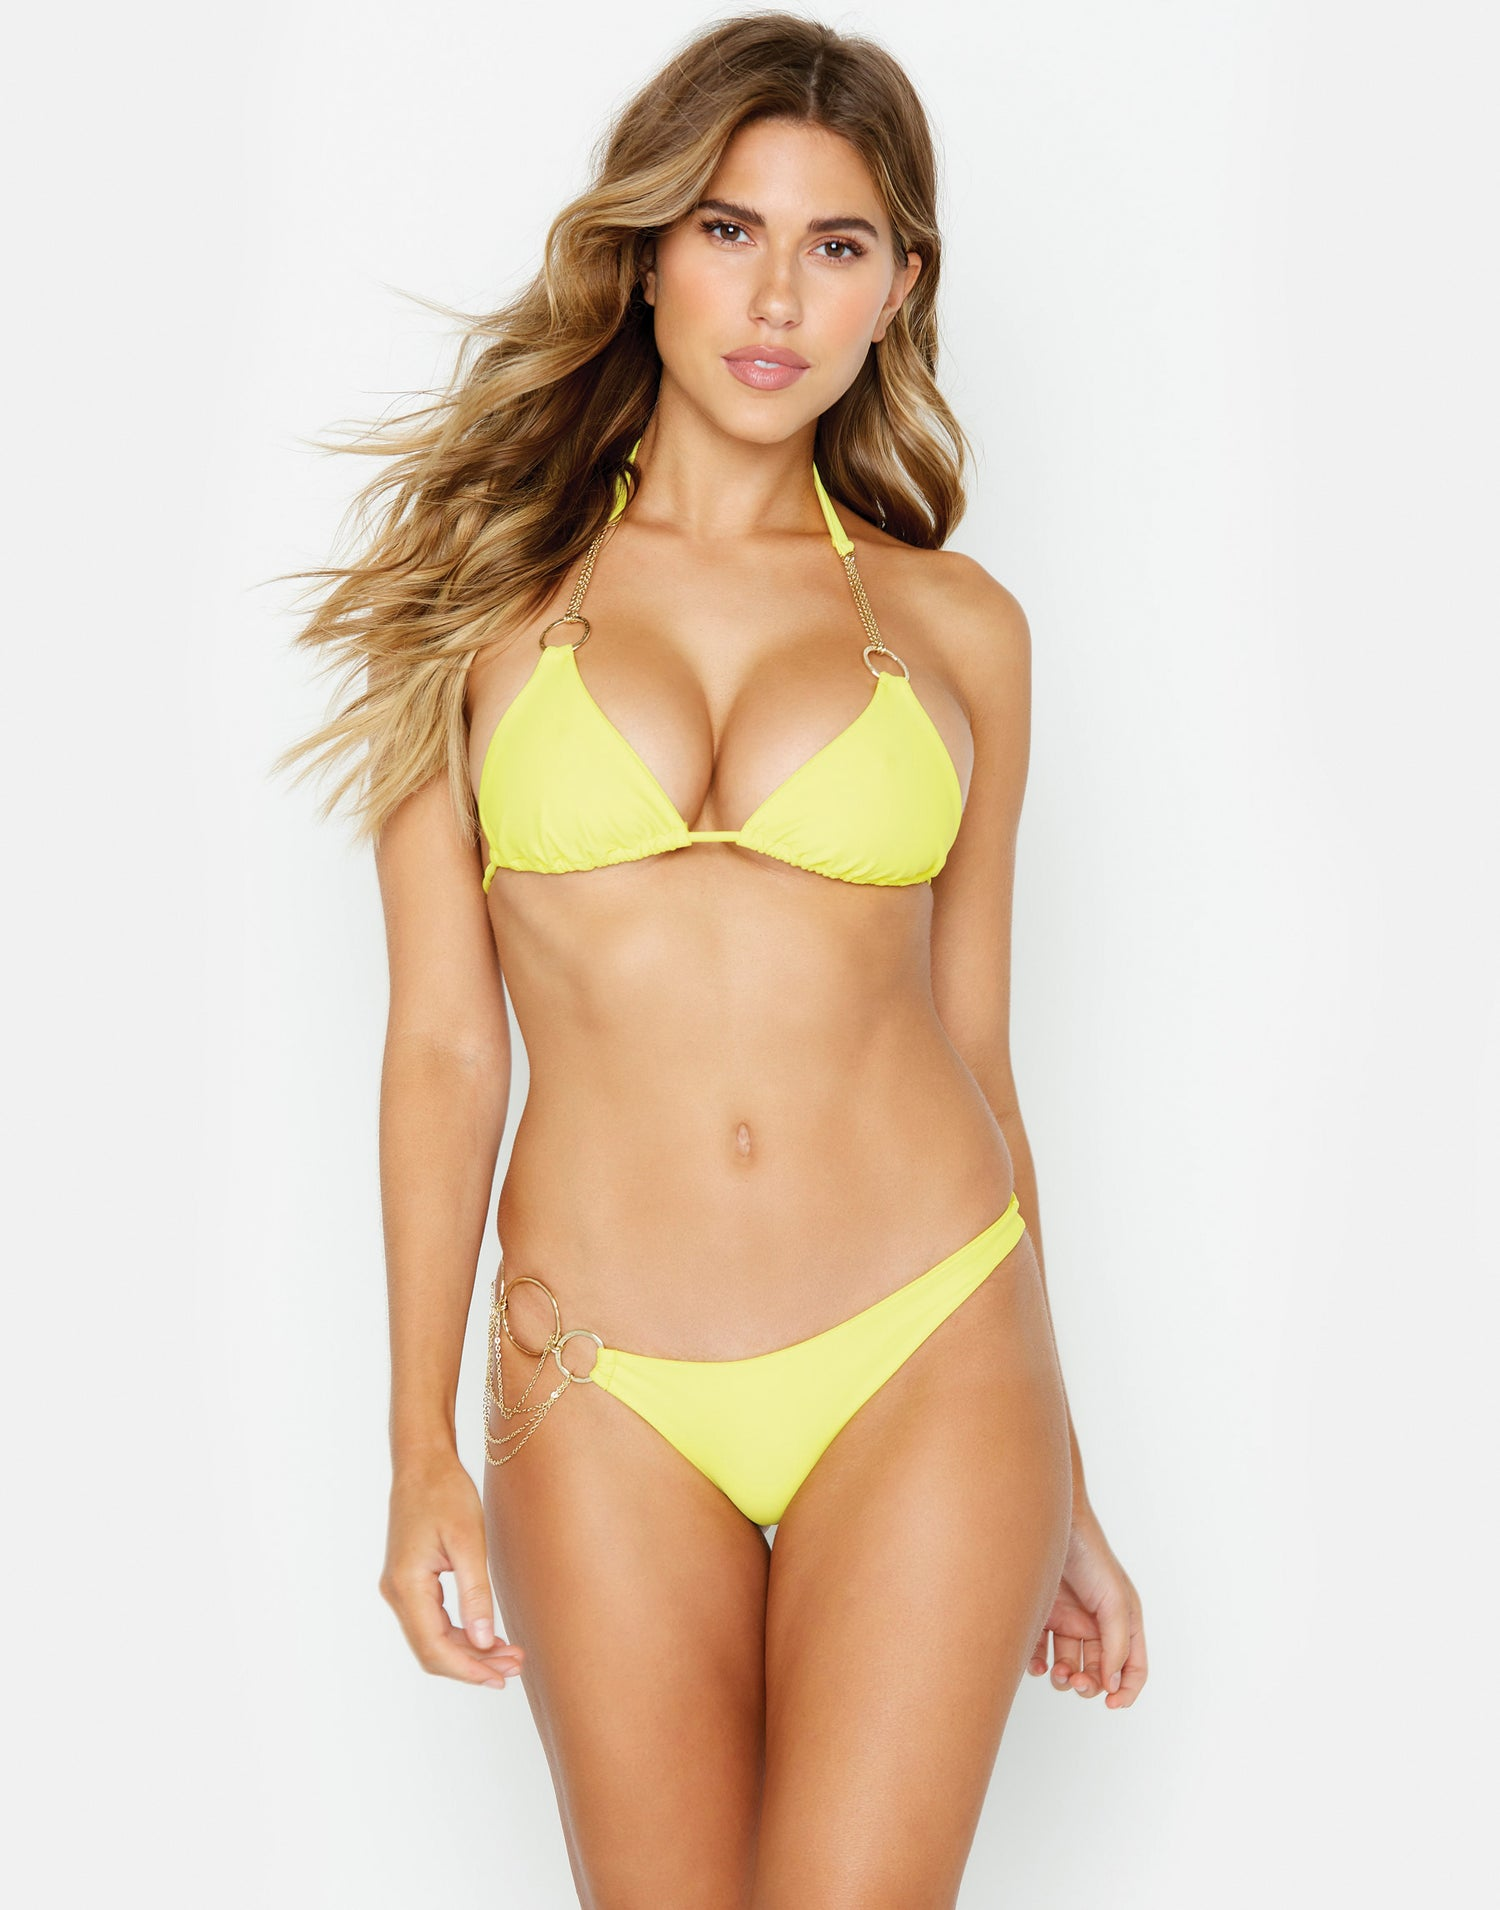 Zara Triangle Bikini Top in Sunshine Yellow with Gold Hardware - front view